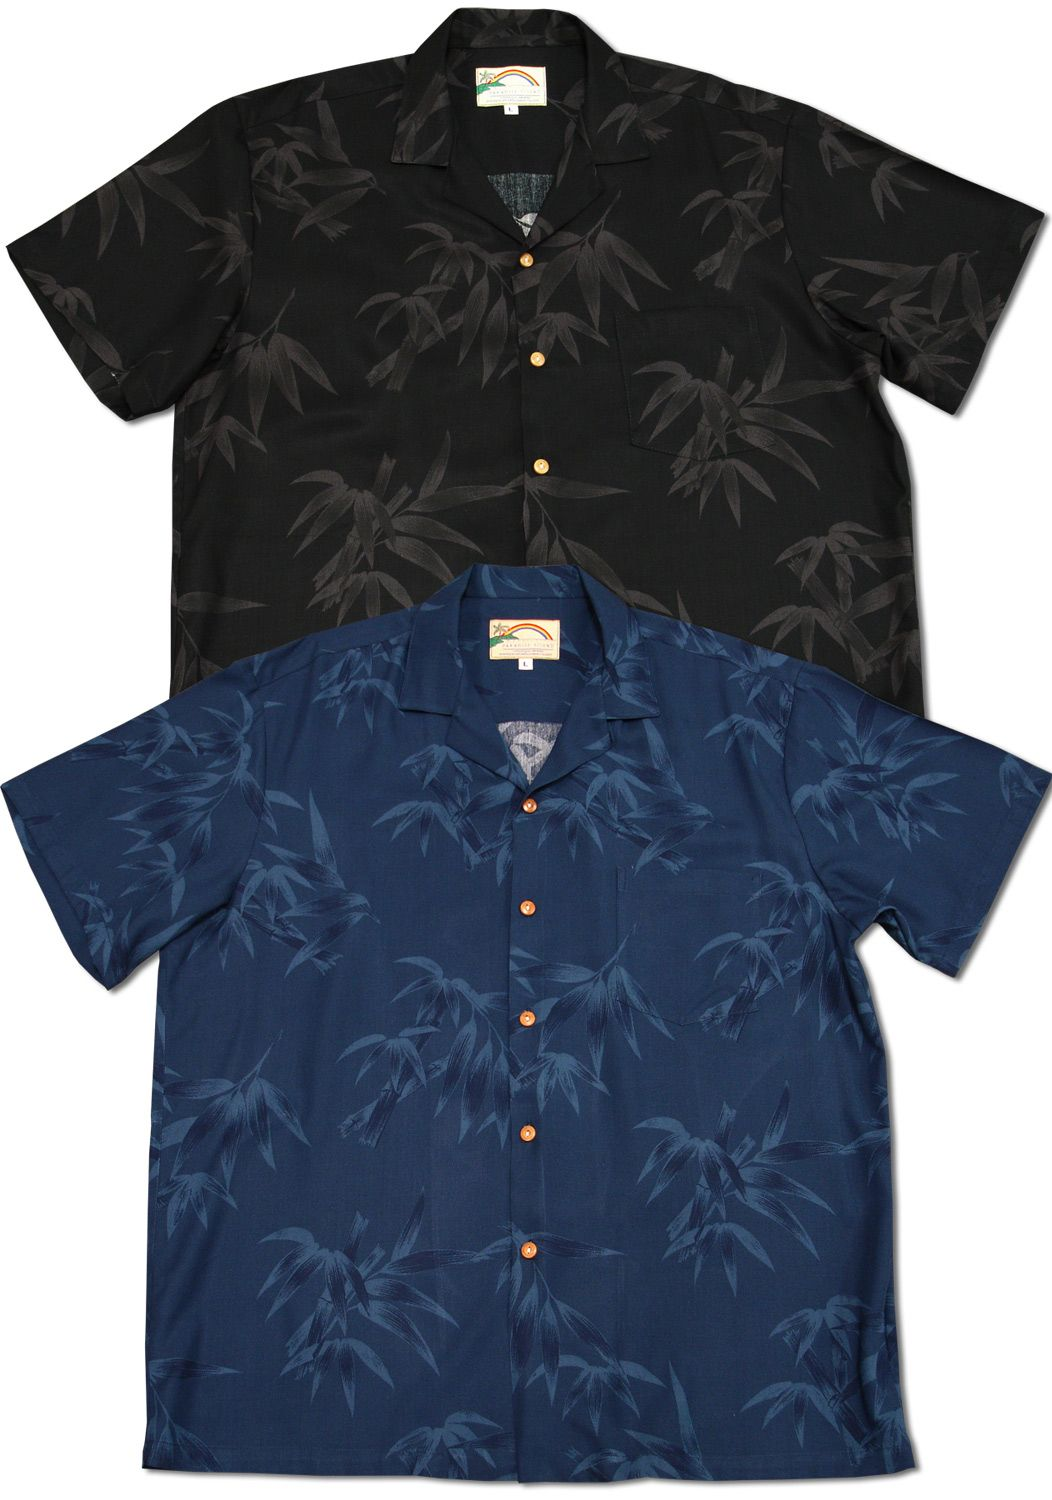 f2ecf0f9 Simple Bamboo Men's Paradise Found shirt created in Wedding White, Navy  Blue and Black. Free shipping from Maui, Hawaii. MauiShirts search box  stock number: ...